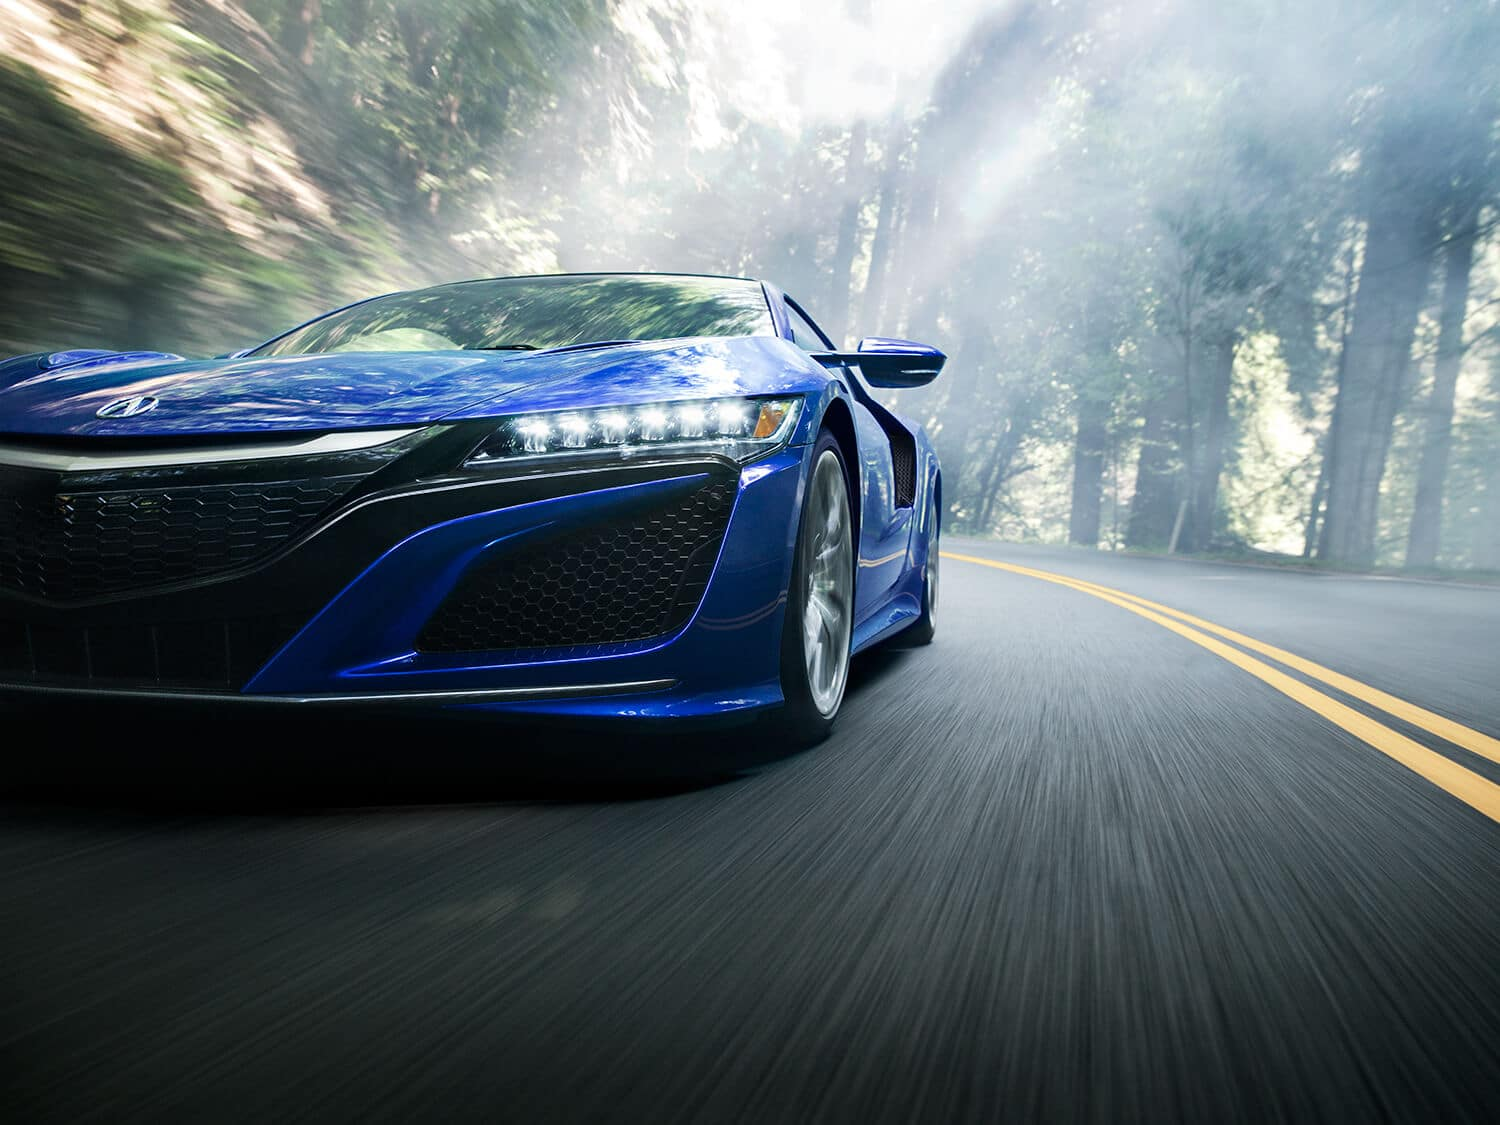 2018 Acura NSX Exterior Front Facing Blue